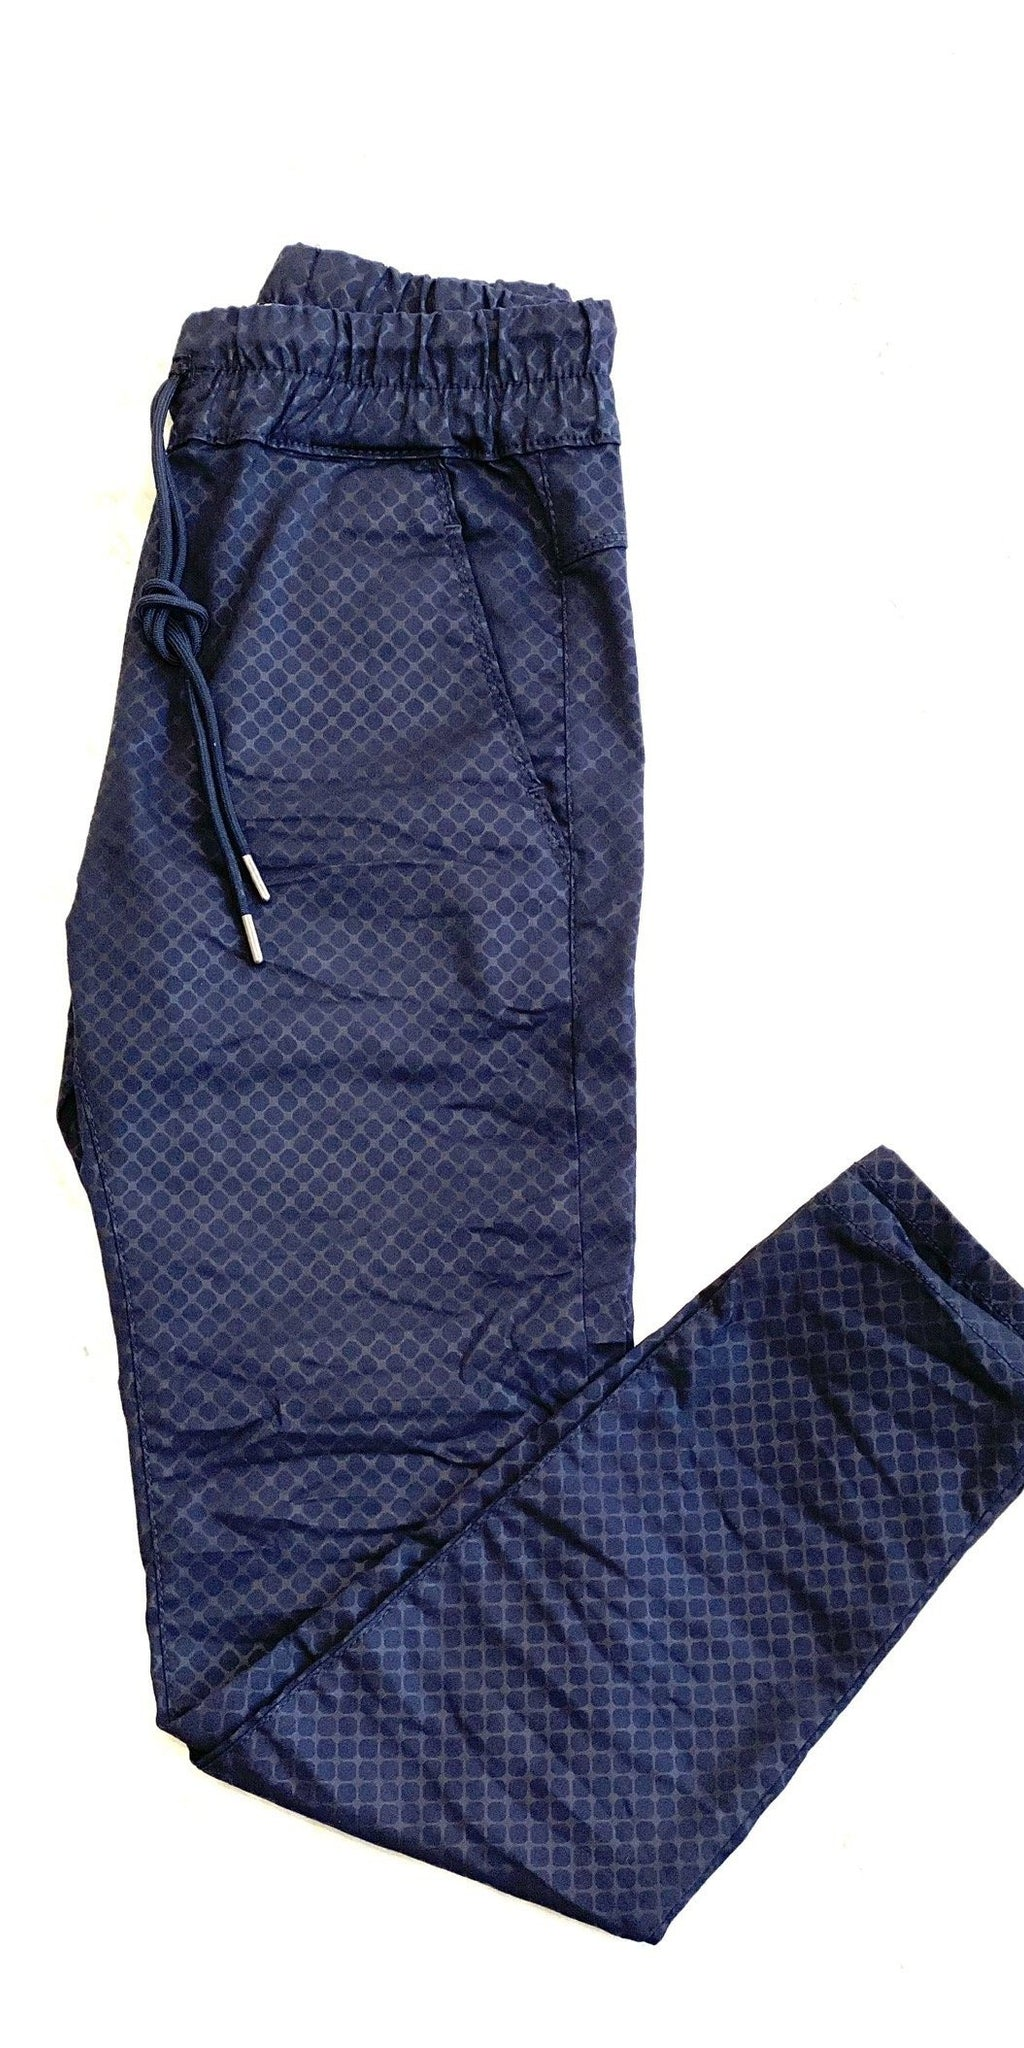 Shely Pant - Navy Diamond-Sea Biscuit Del Mar